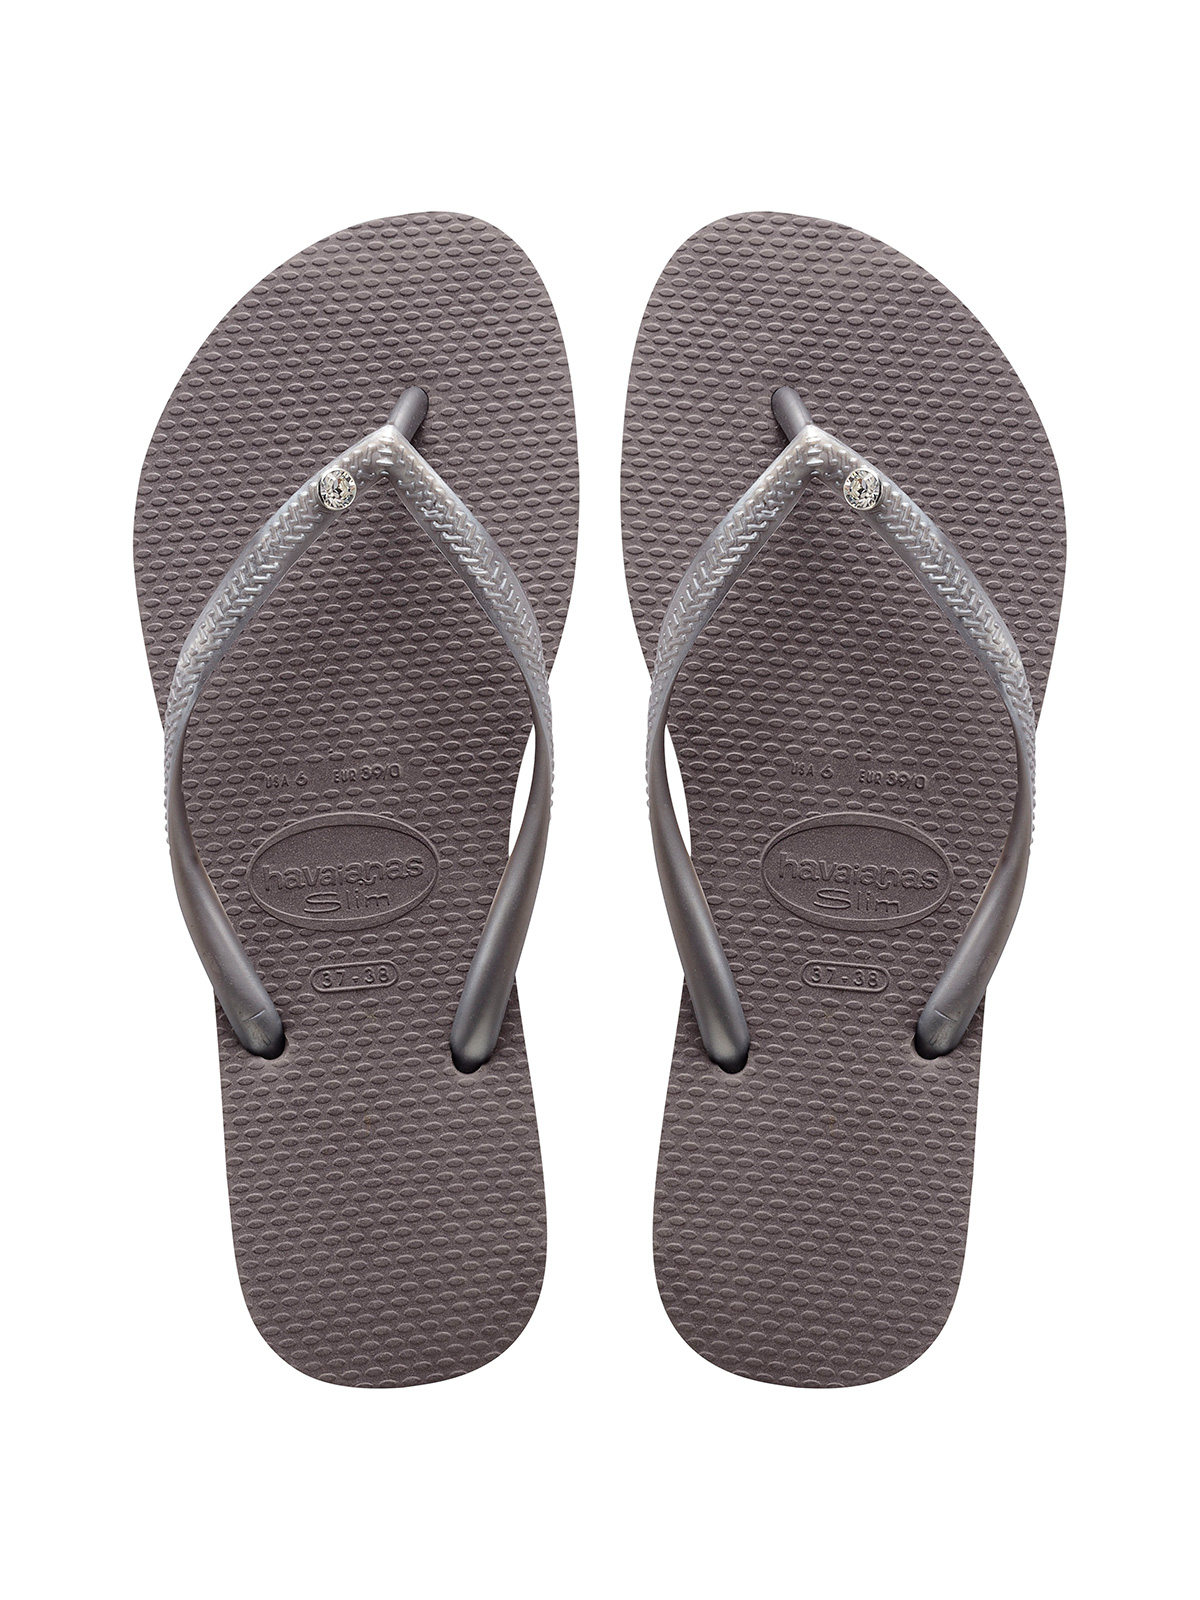 Havaianas Damen Slim Logo Metallic Zehentrenner, Beige (Sand Grey/Light Golden), 39/40 EU (37/38 BR)